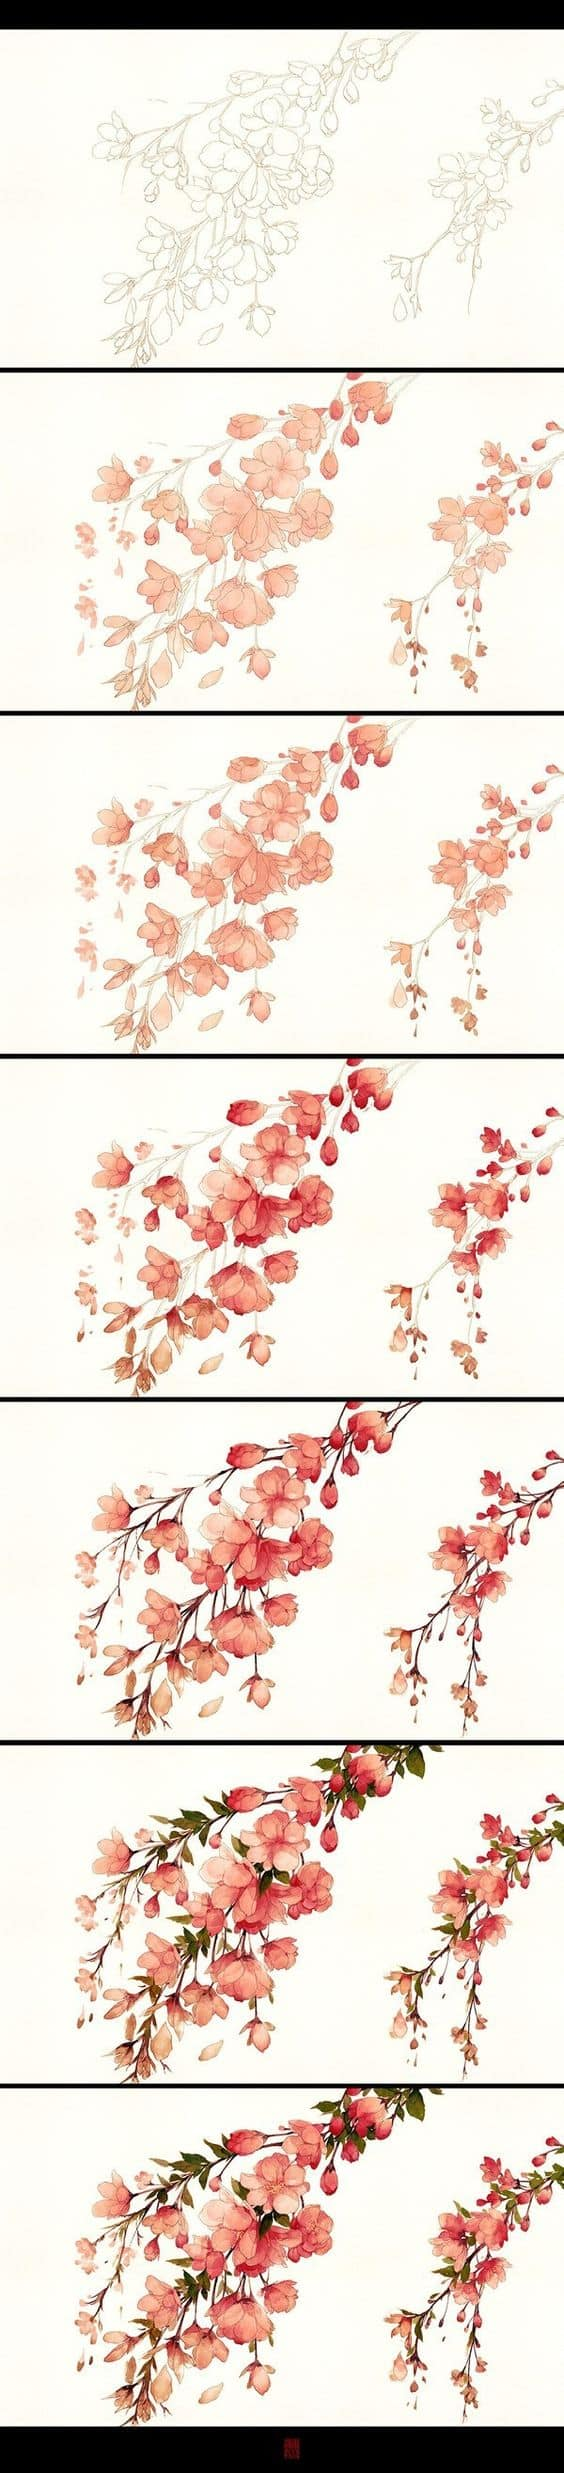 WATERCOLOR TREE SPRING BLOSSOMS